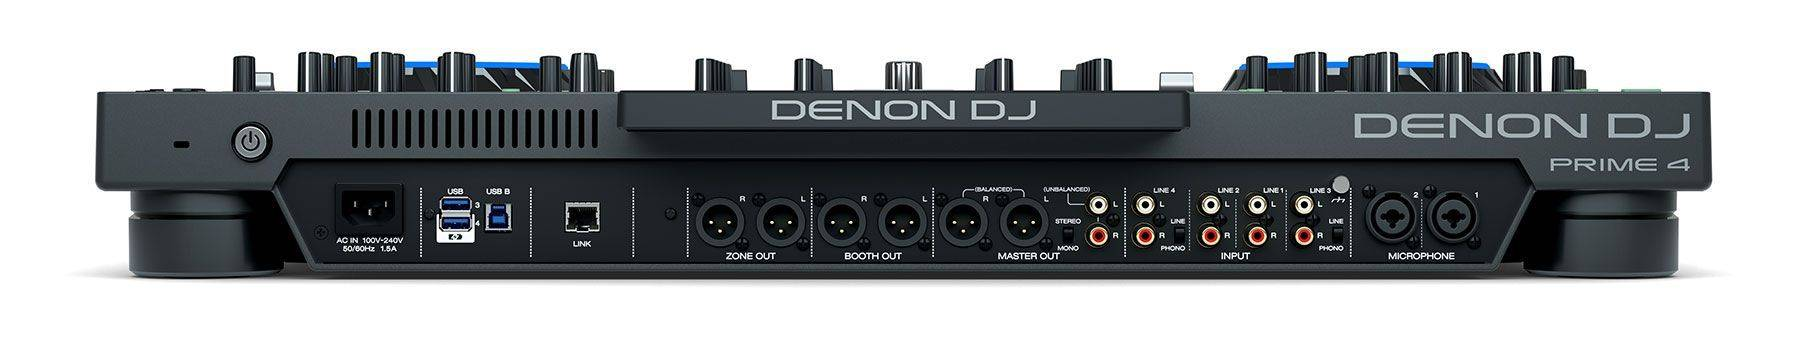 """Denon DJ Prime 4 Standalone 4 Deck DJ System with 10"""" Touchscreen Product Image 11"""